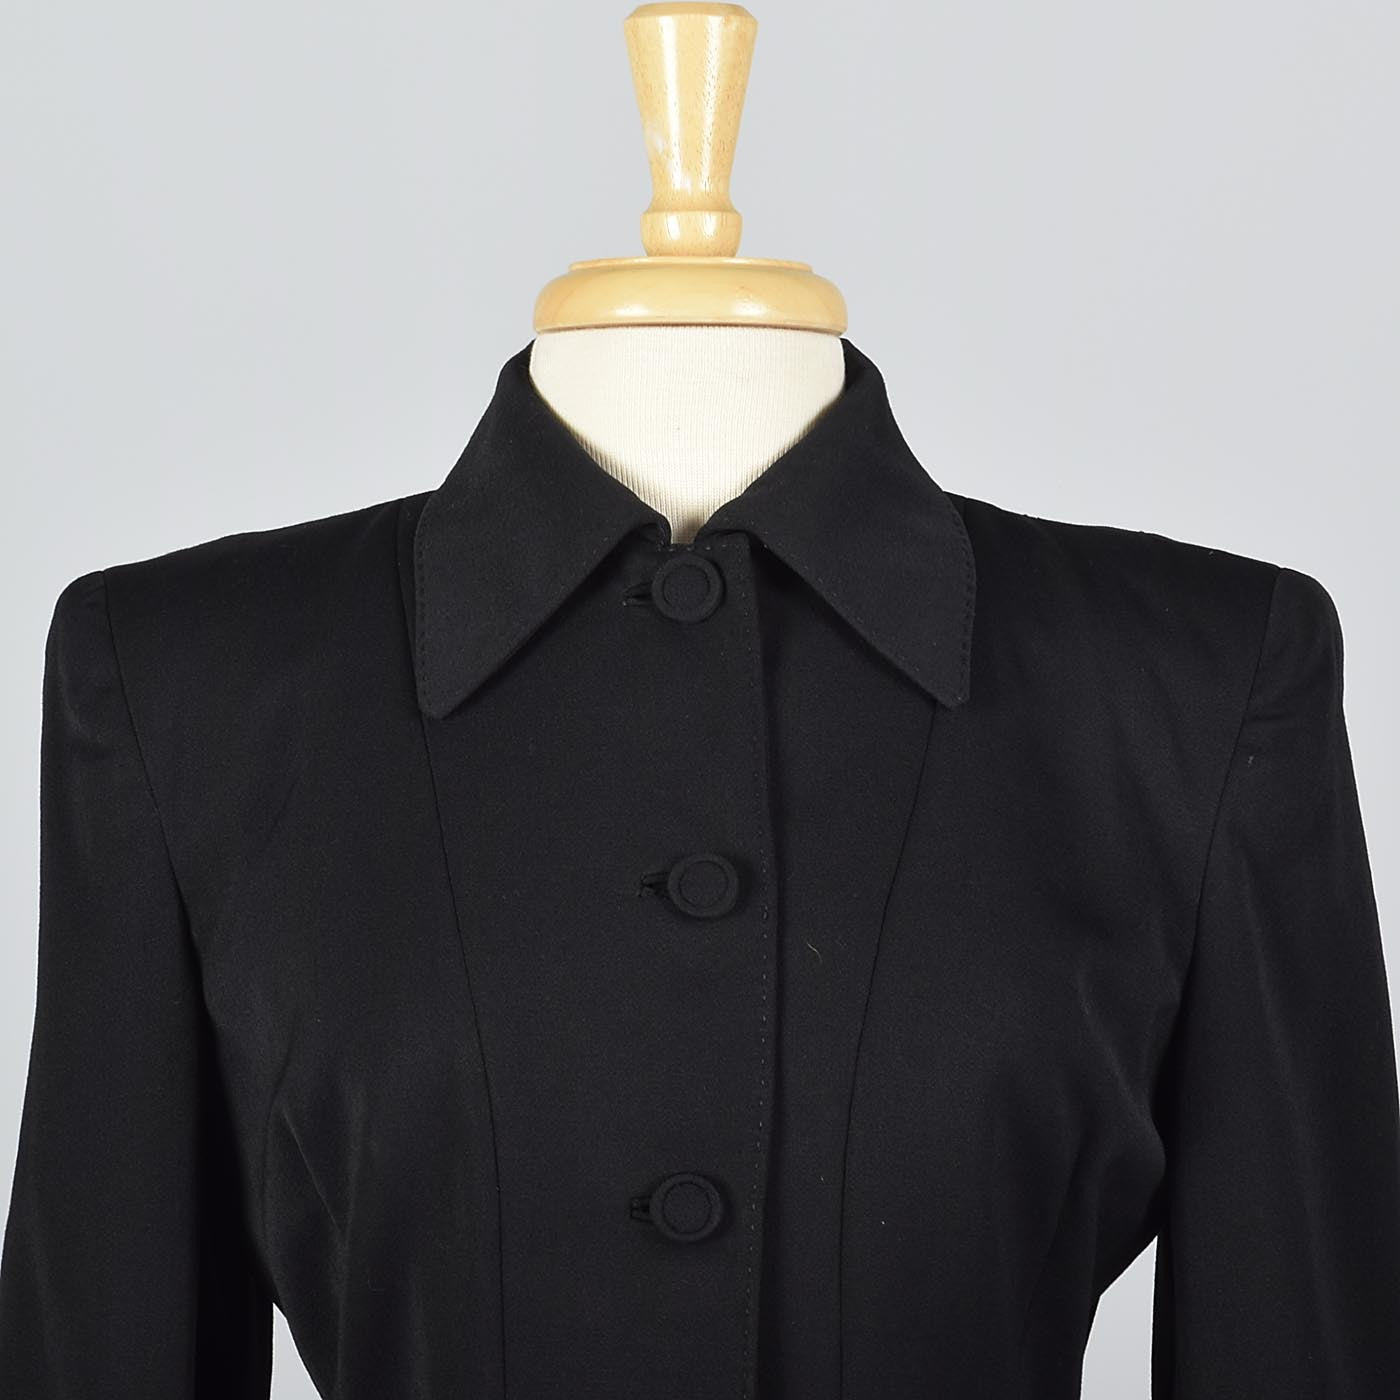 1950s Beautifully Tailored Black Wool Blazer